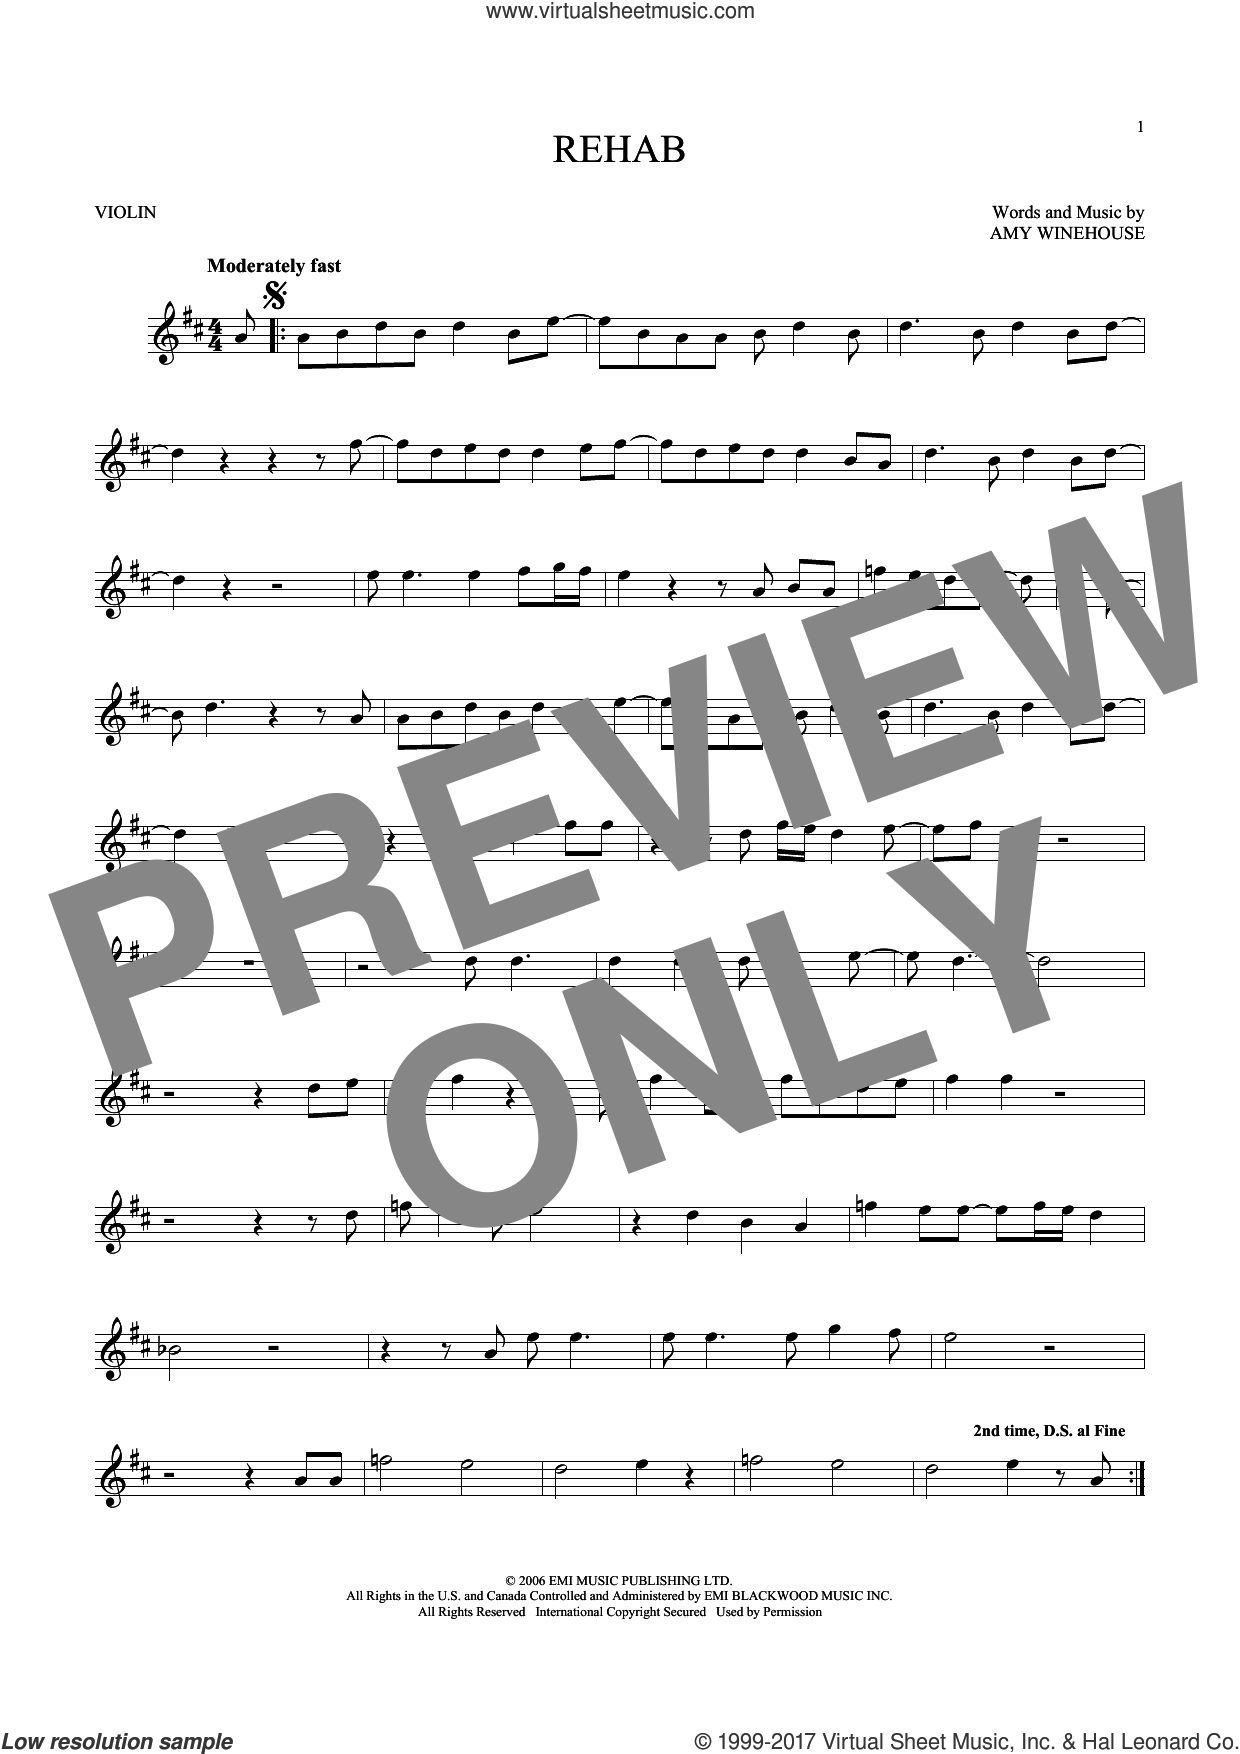 Rehab sheet music for violin solo by Amy Winehouse, intermediate skill level